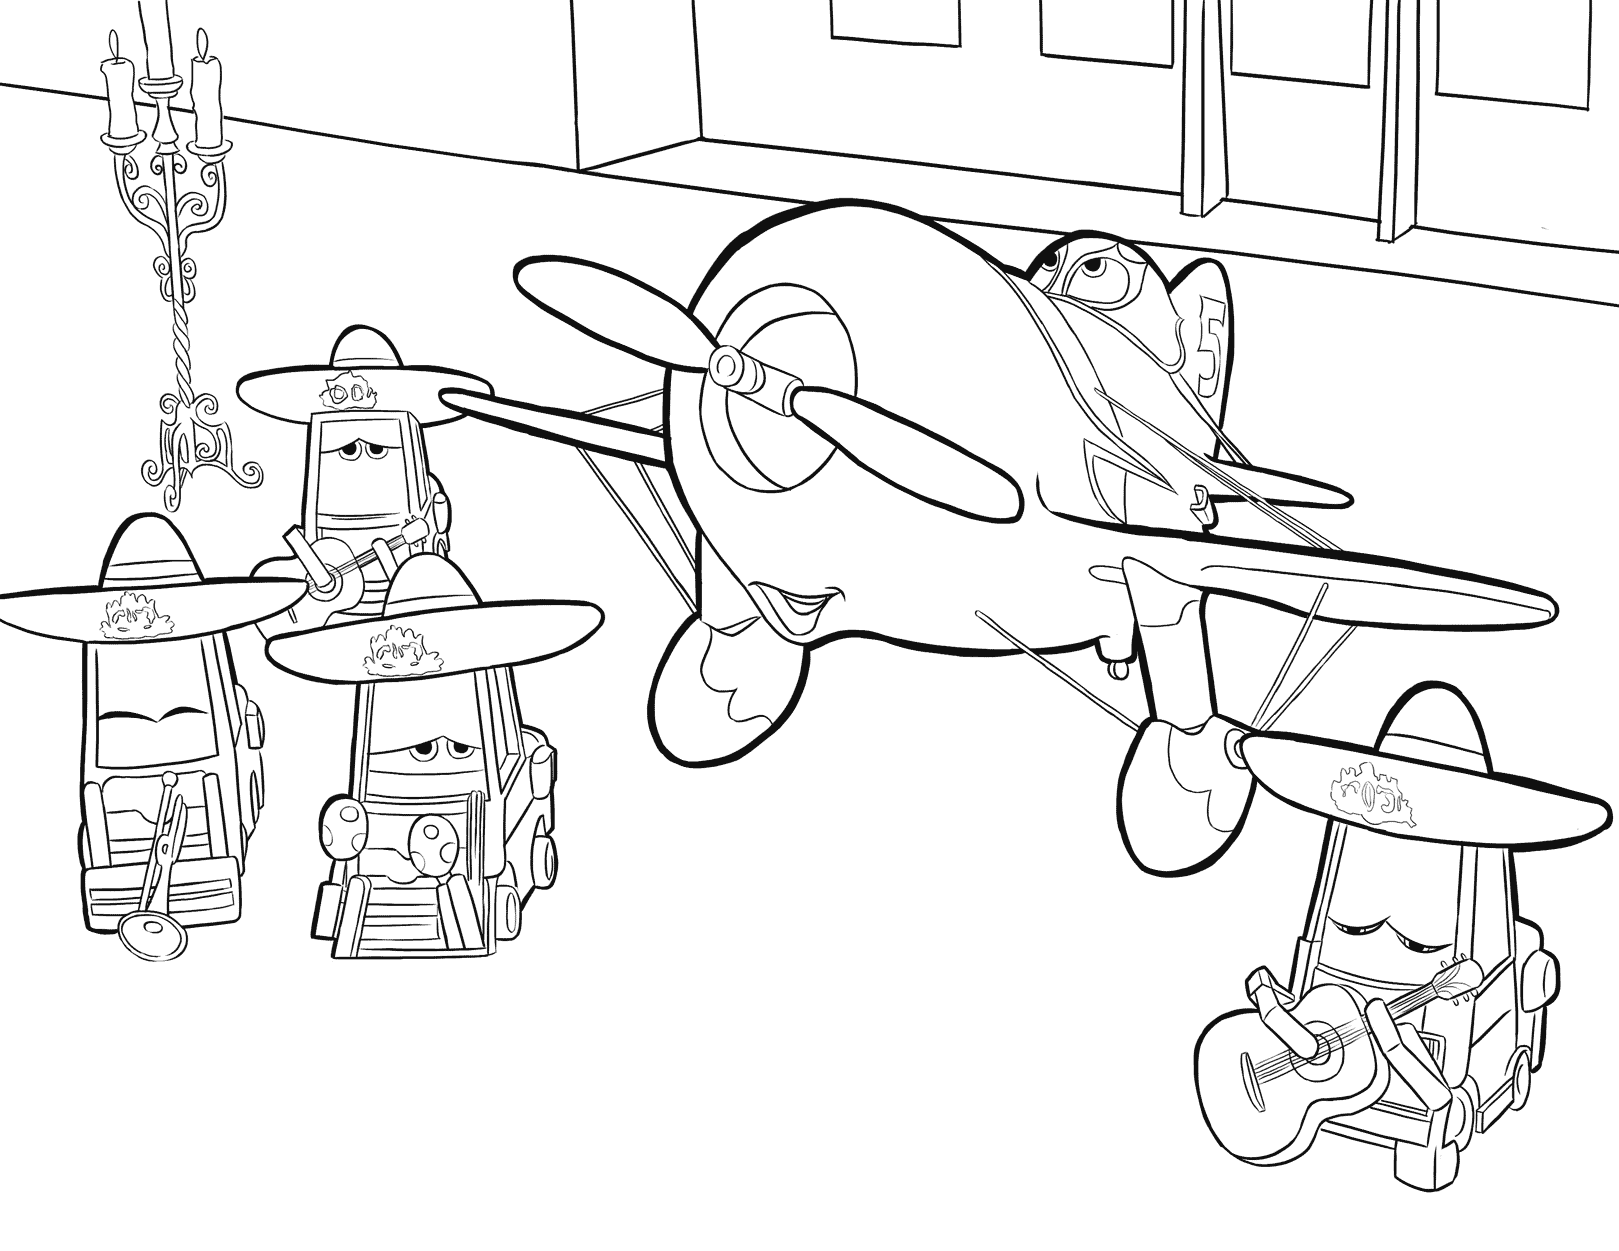 coloring pages of planes - photo#5